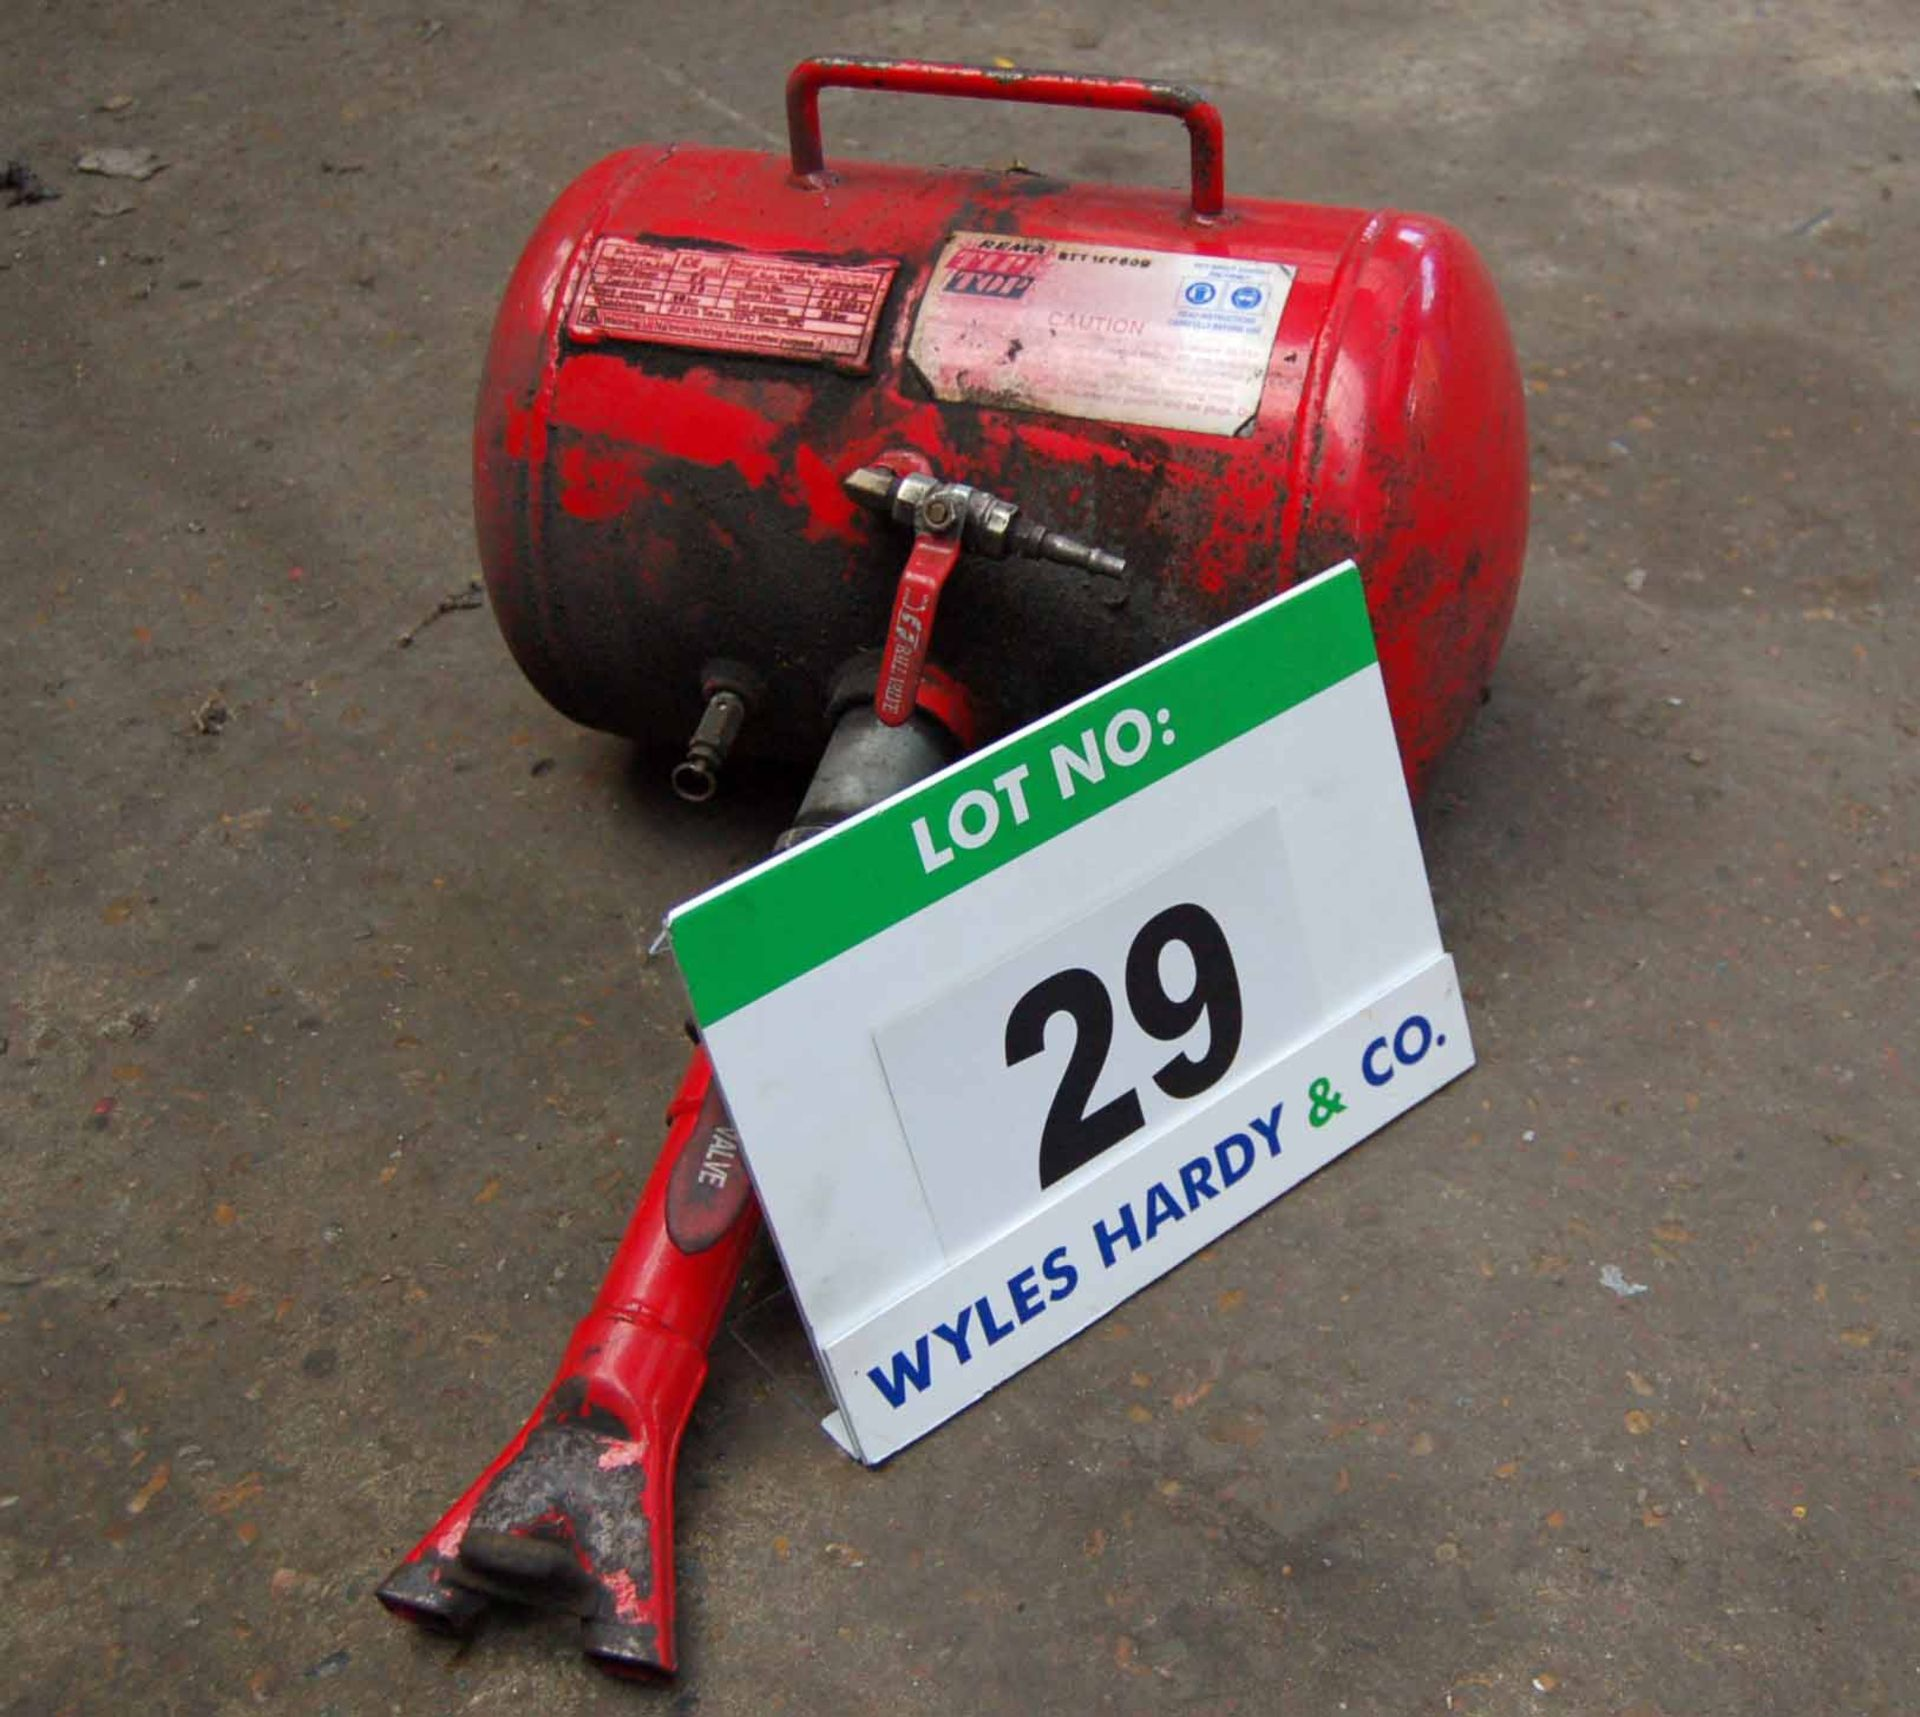 Lot 29 - A REMA Tip Top Portable Pneumatic Receiver Tank with Attachment (As Photographed)